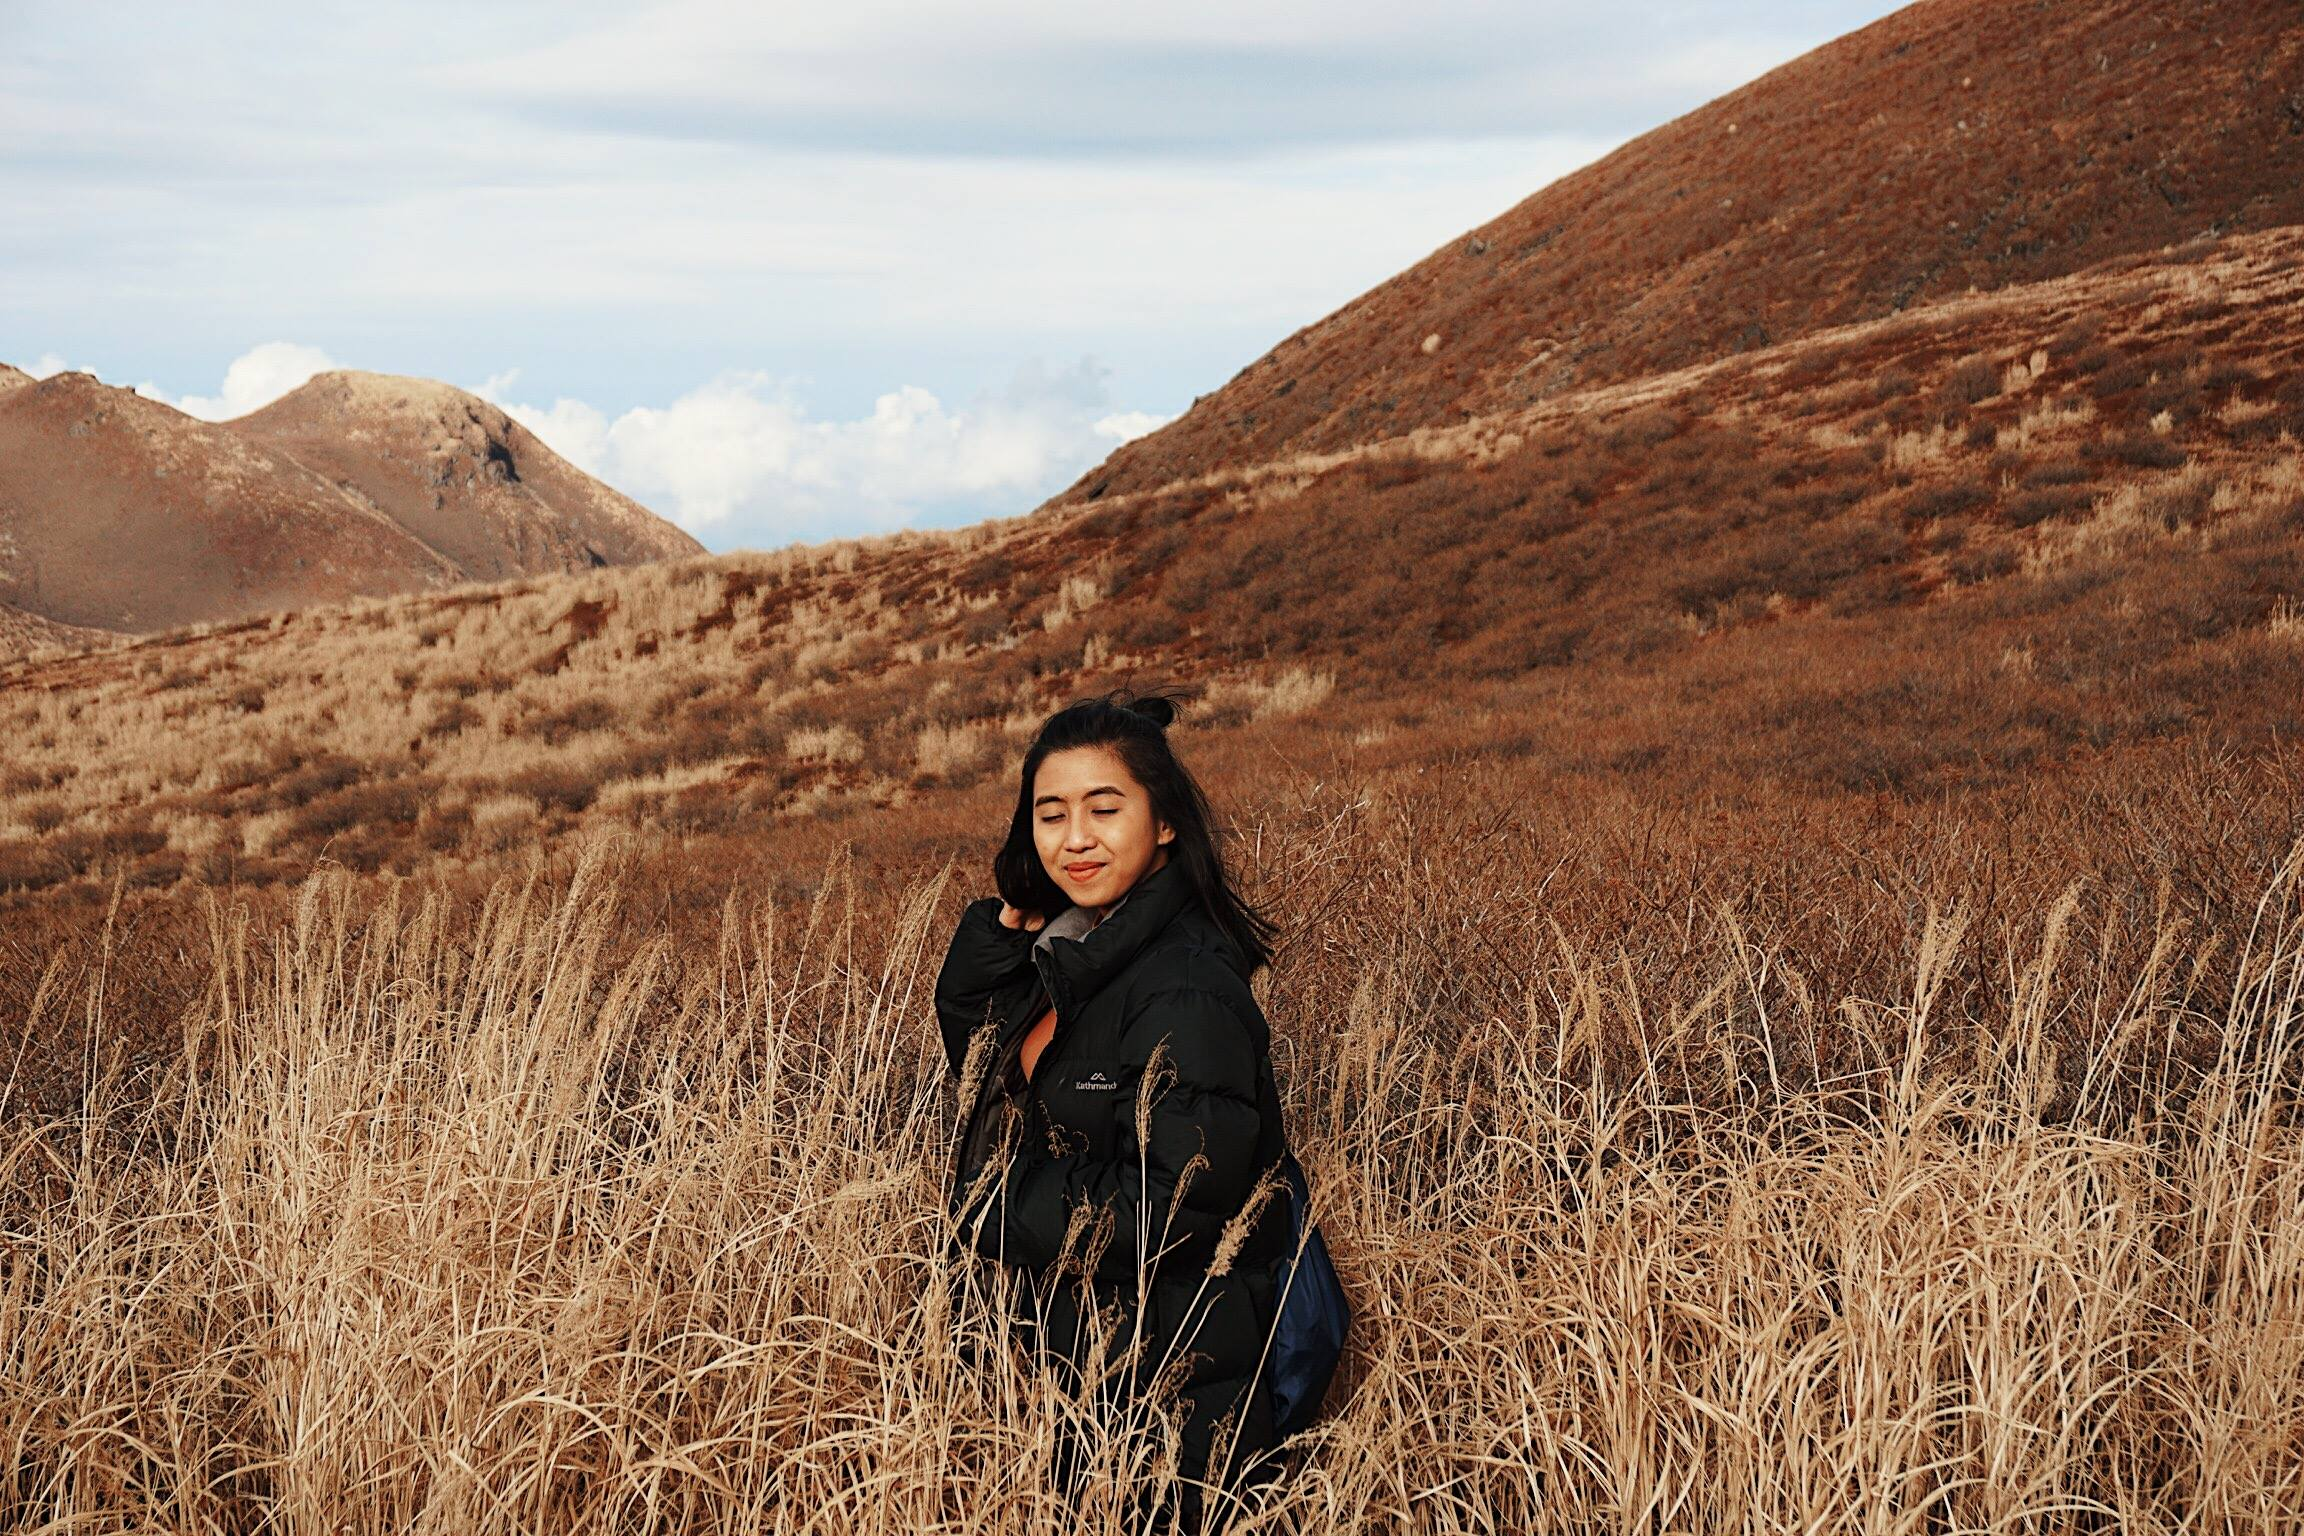 A picture of a girl amidst dried plants